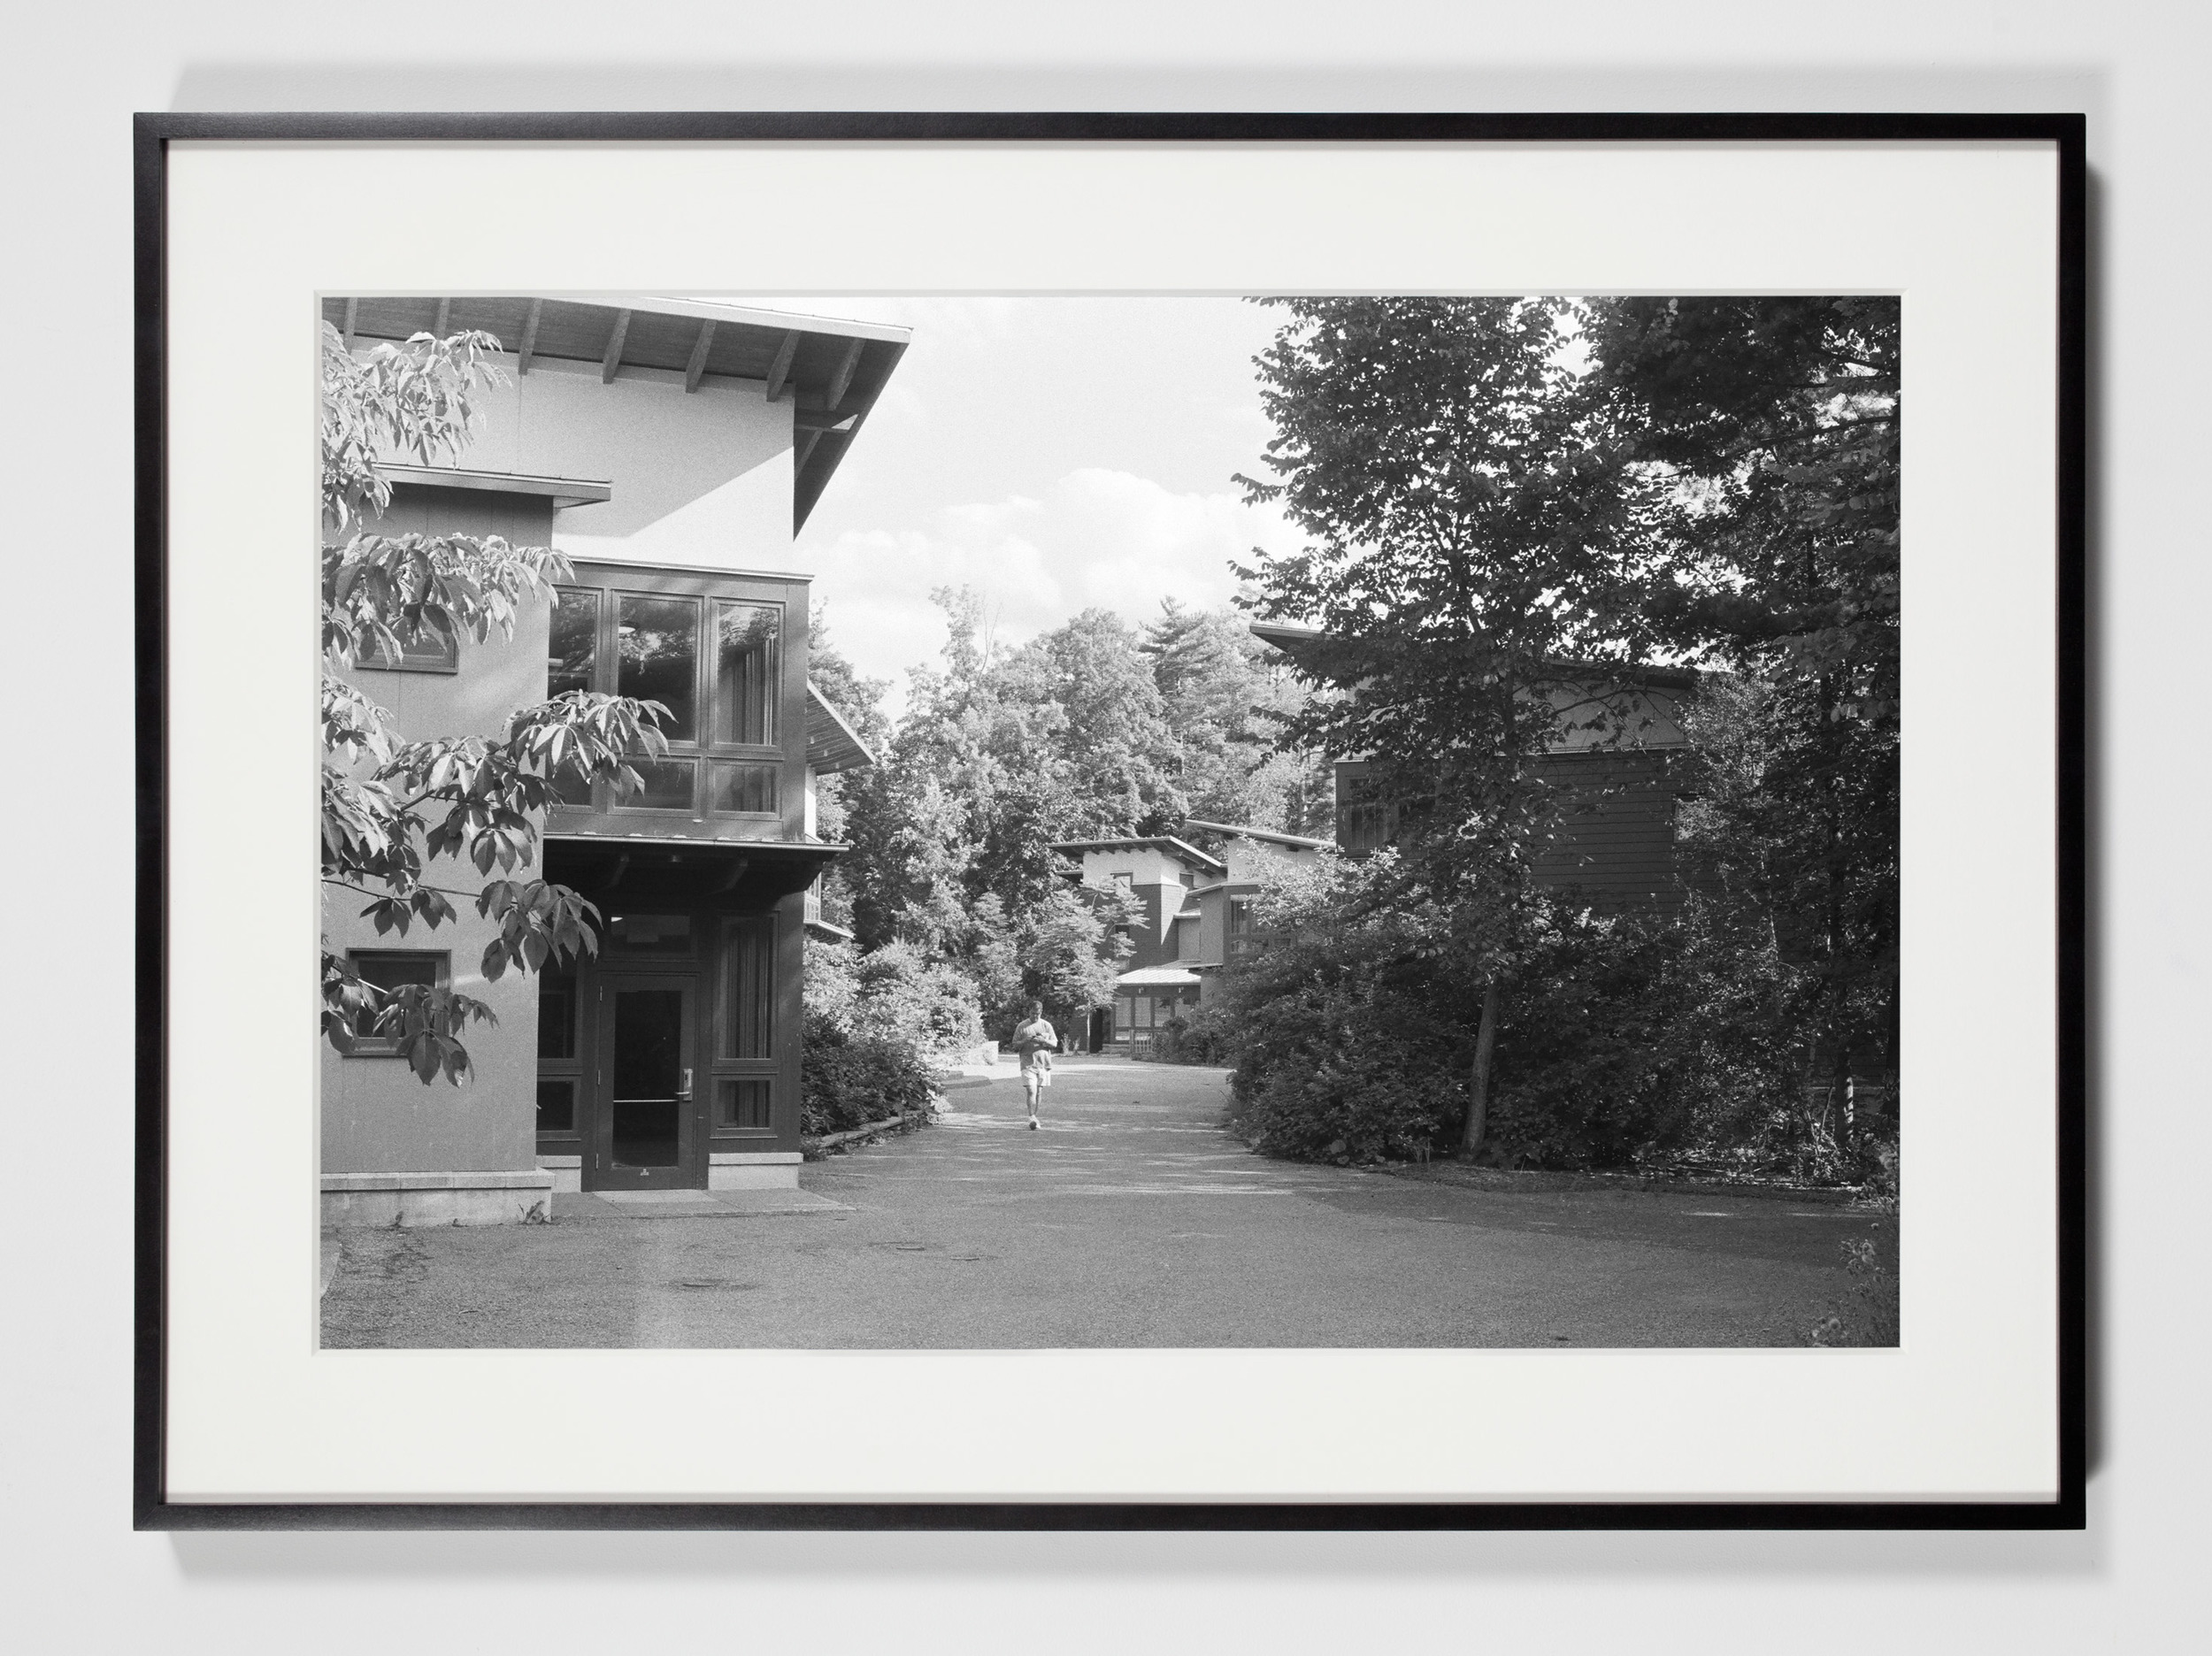 College Dormitory (Bard College), Annandale-on-Hudson, New York, July 11, 2009    2009   Epson Ultrachrome K3 archival ink jet print on Hahnemühle Photo Rag paper  36 3/8 x 26 3/8 inches   Industrial Portraits, 2008–